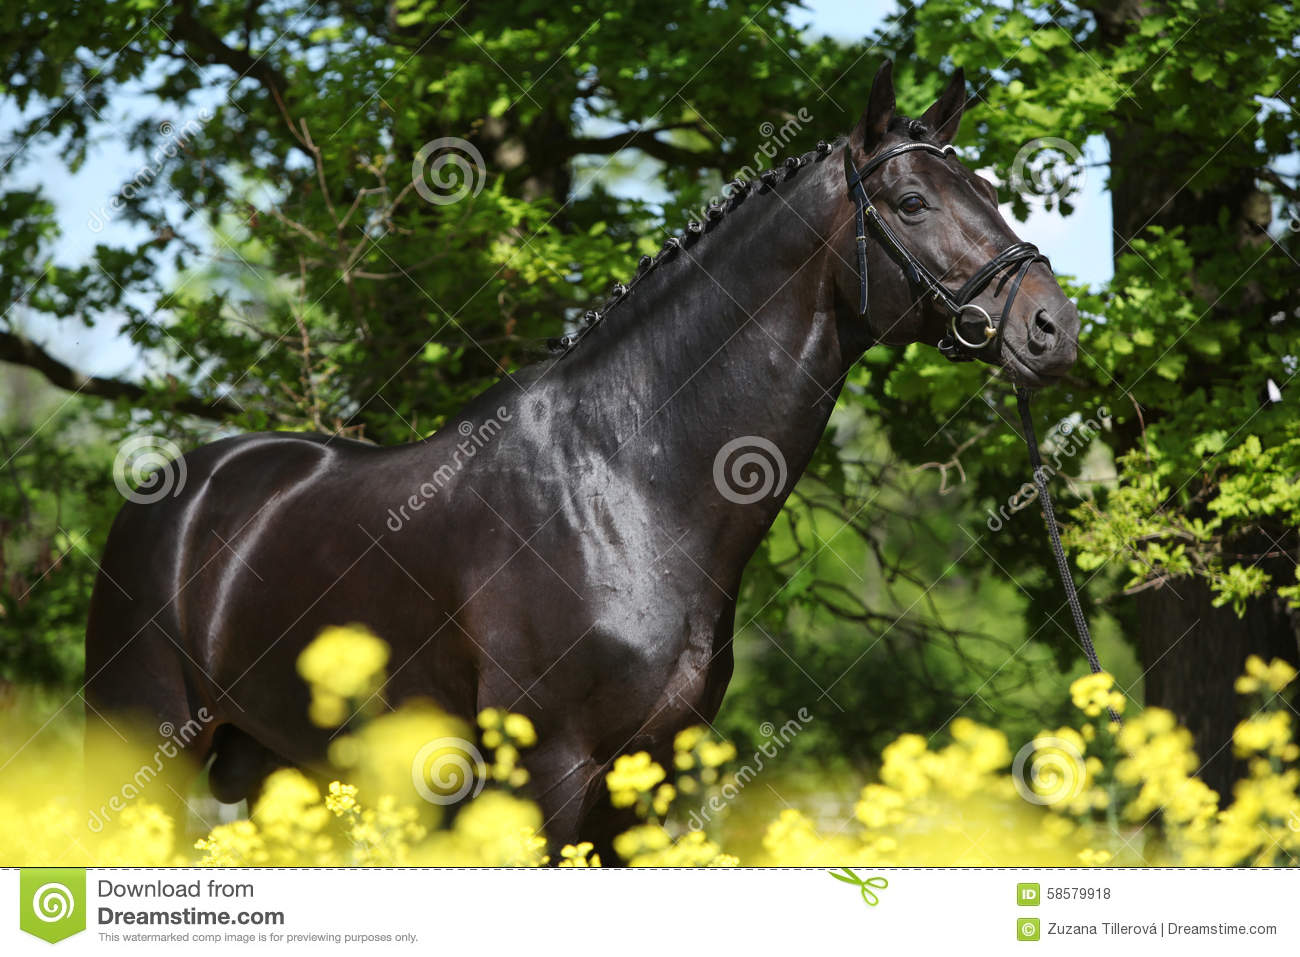 Amazing black dutch warmblood with yellow flowers